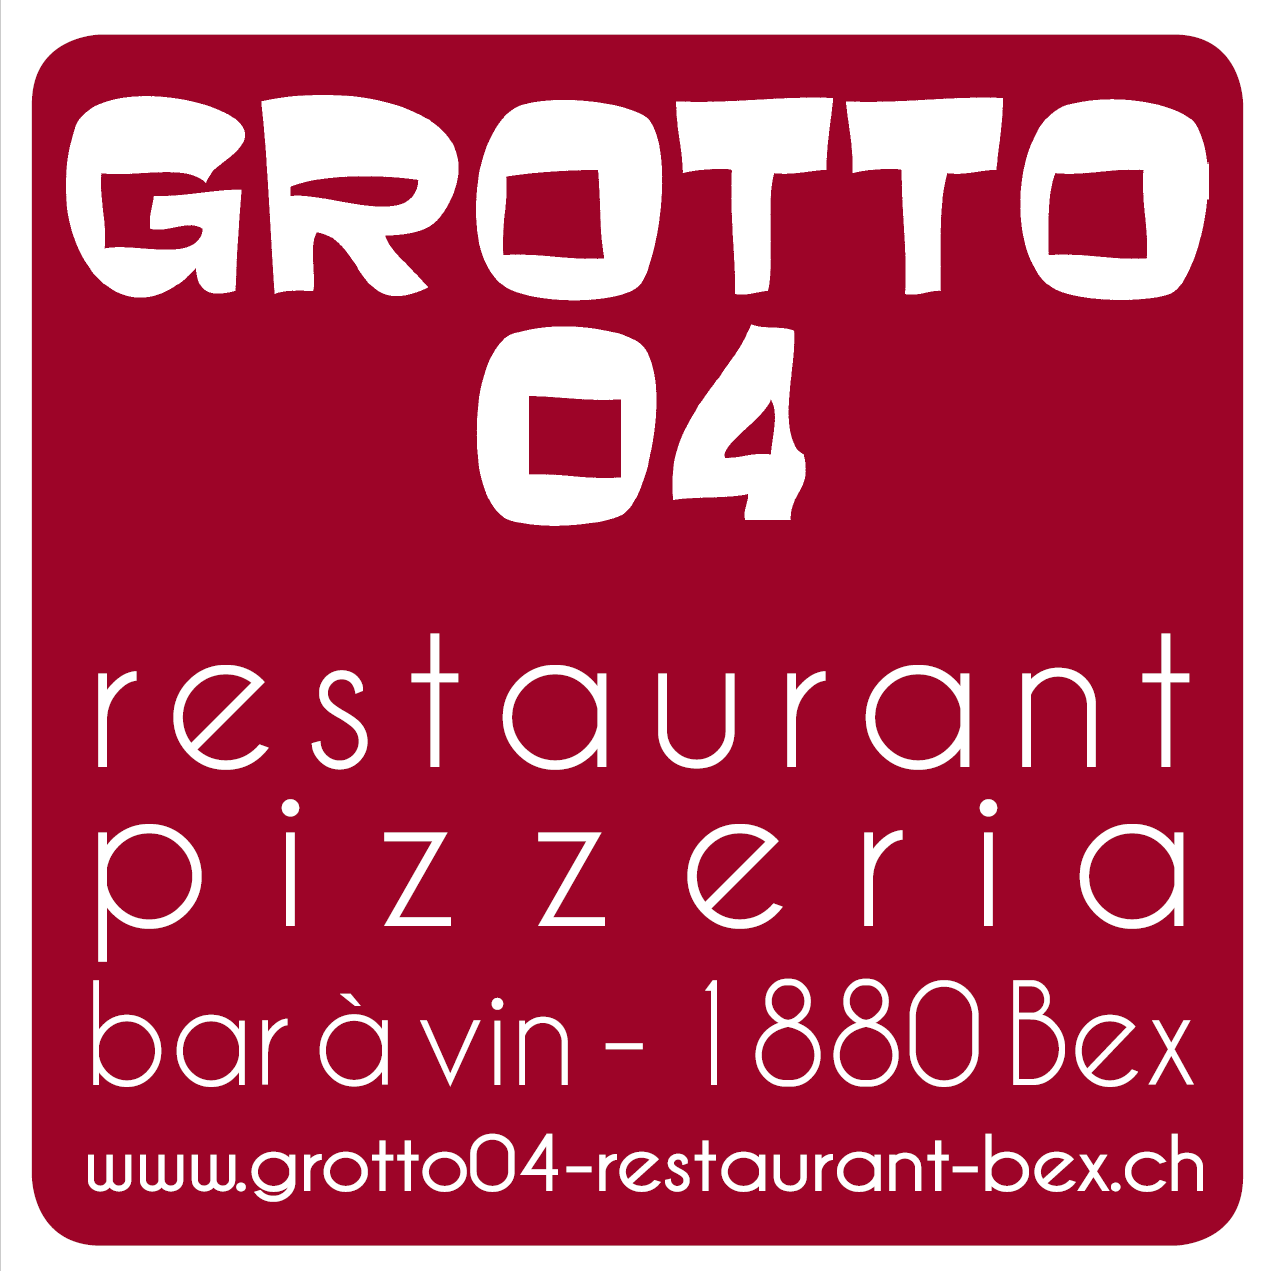 Grotto 04 - Accueil